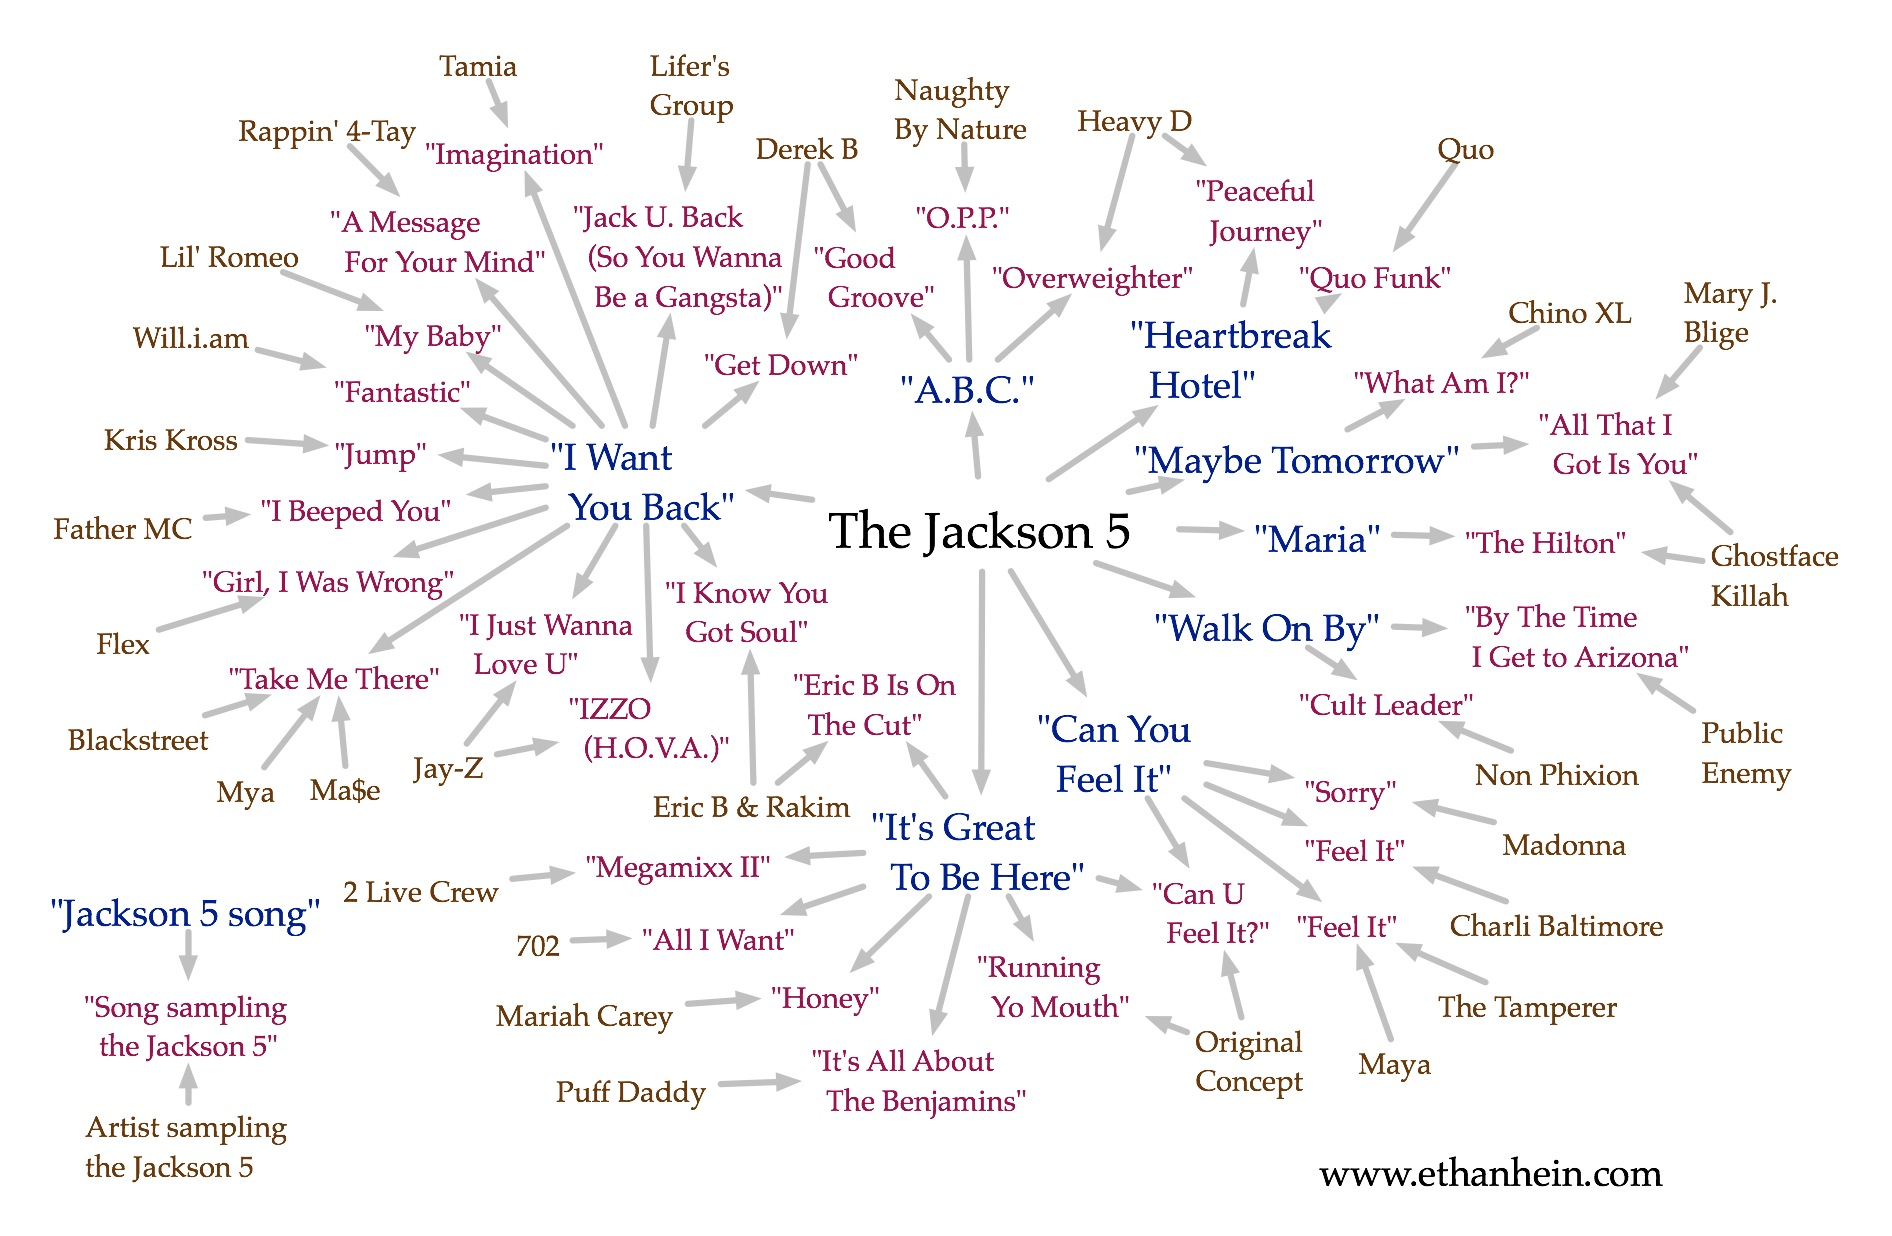 The Michael Jackson sample map goes viral | The Ethan Hein Blog